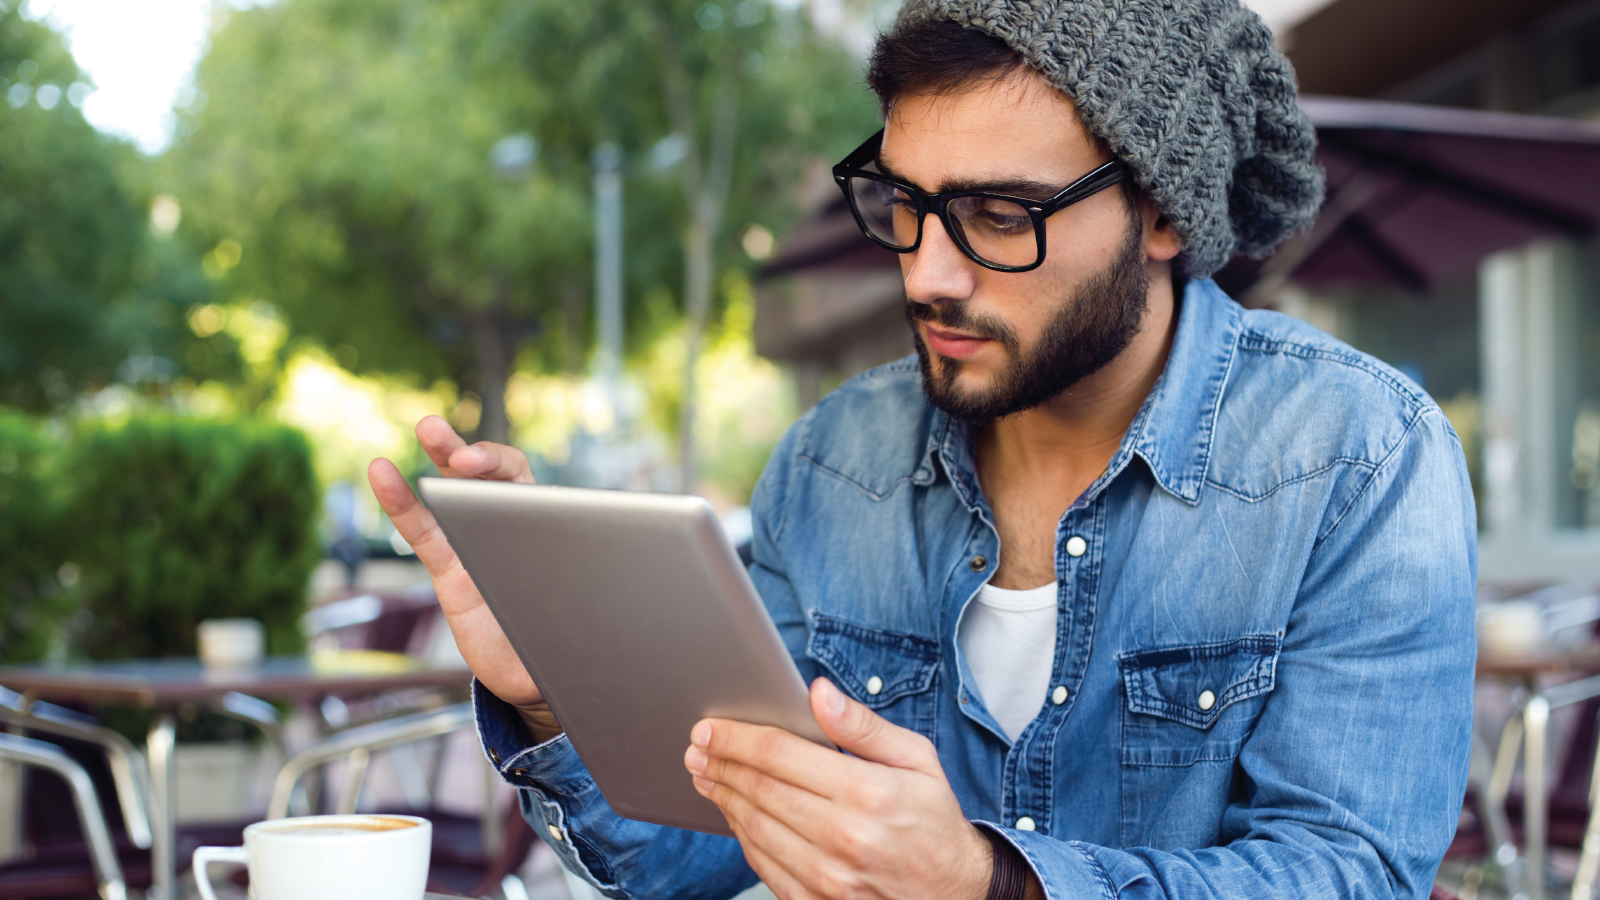 Man enjoying coffee while checking his account on a tablet